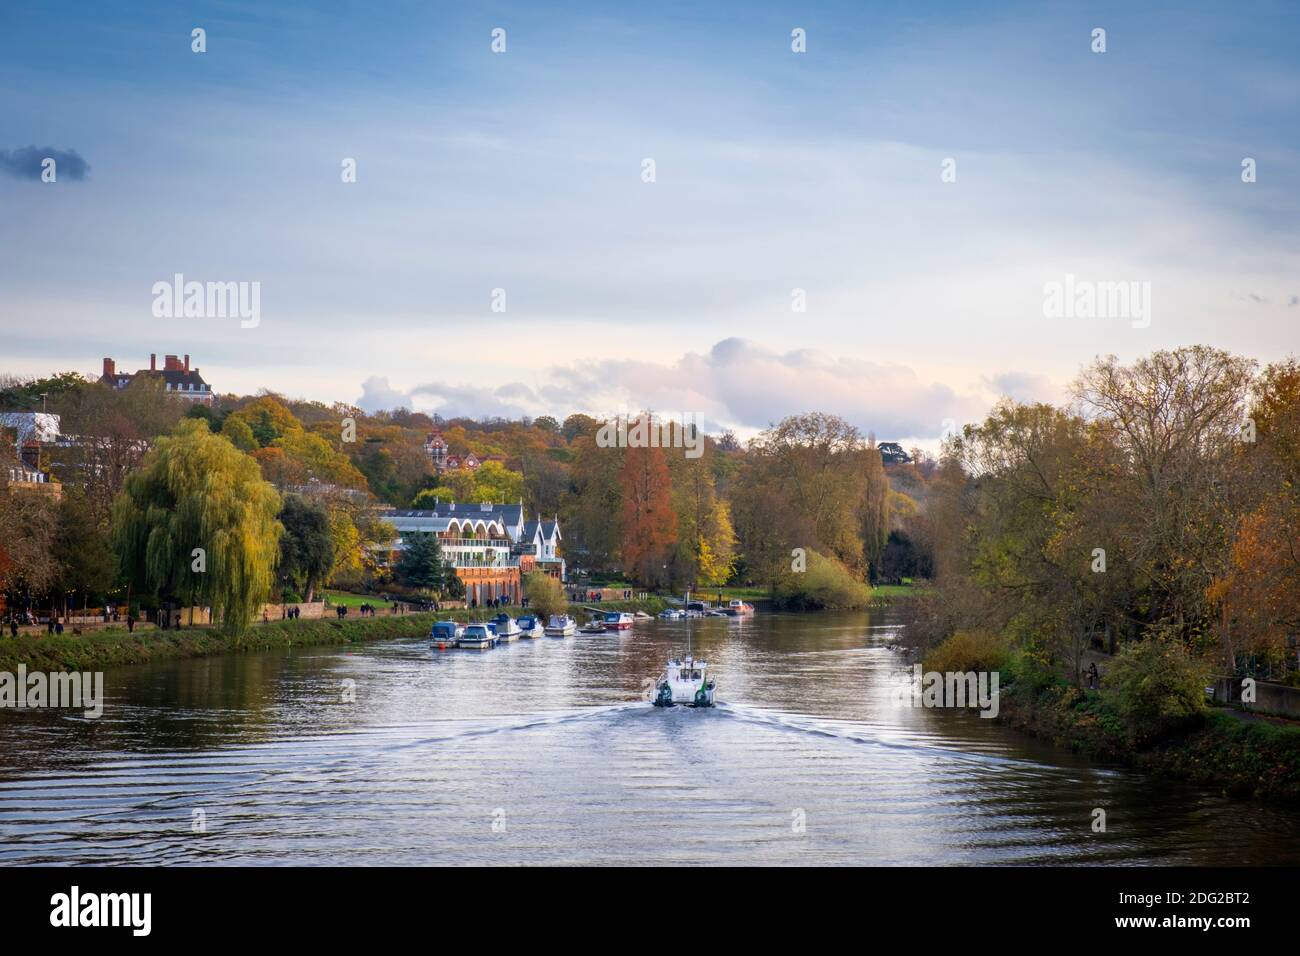 Europe, UK, London, Richmond, an affluent residential suburb in west London, Thames River, Autumn, boats on the river, trees in fall, tranquil scene Stock Photo